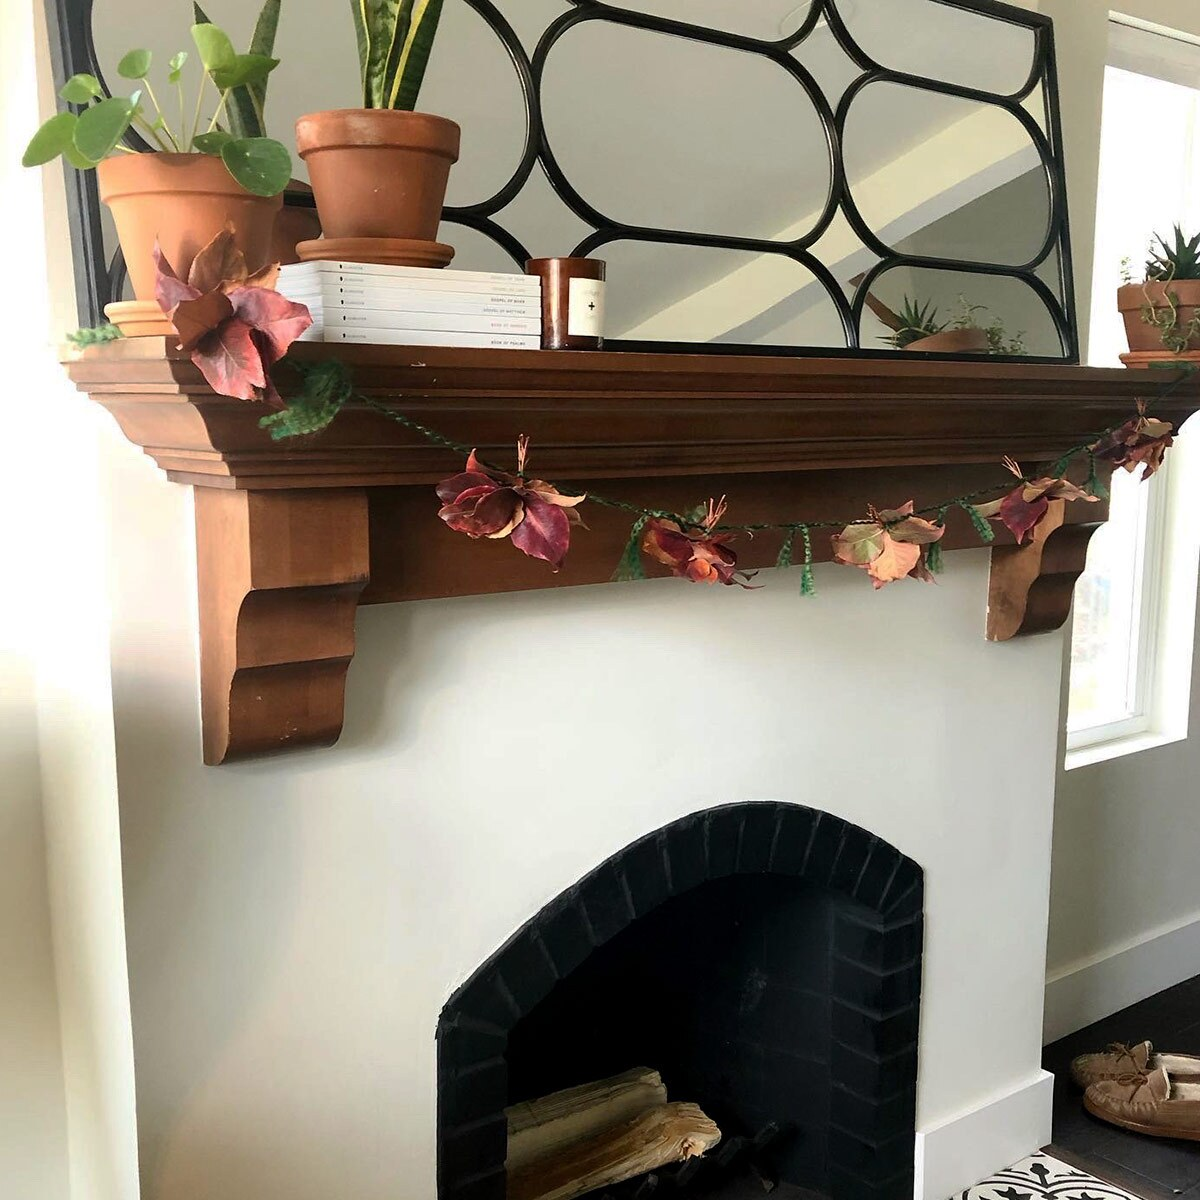 A garland made of fall leaves hangs on top of a fireplace.